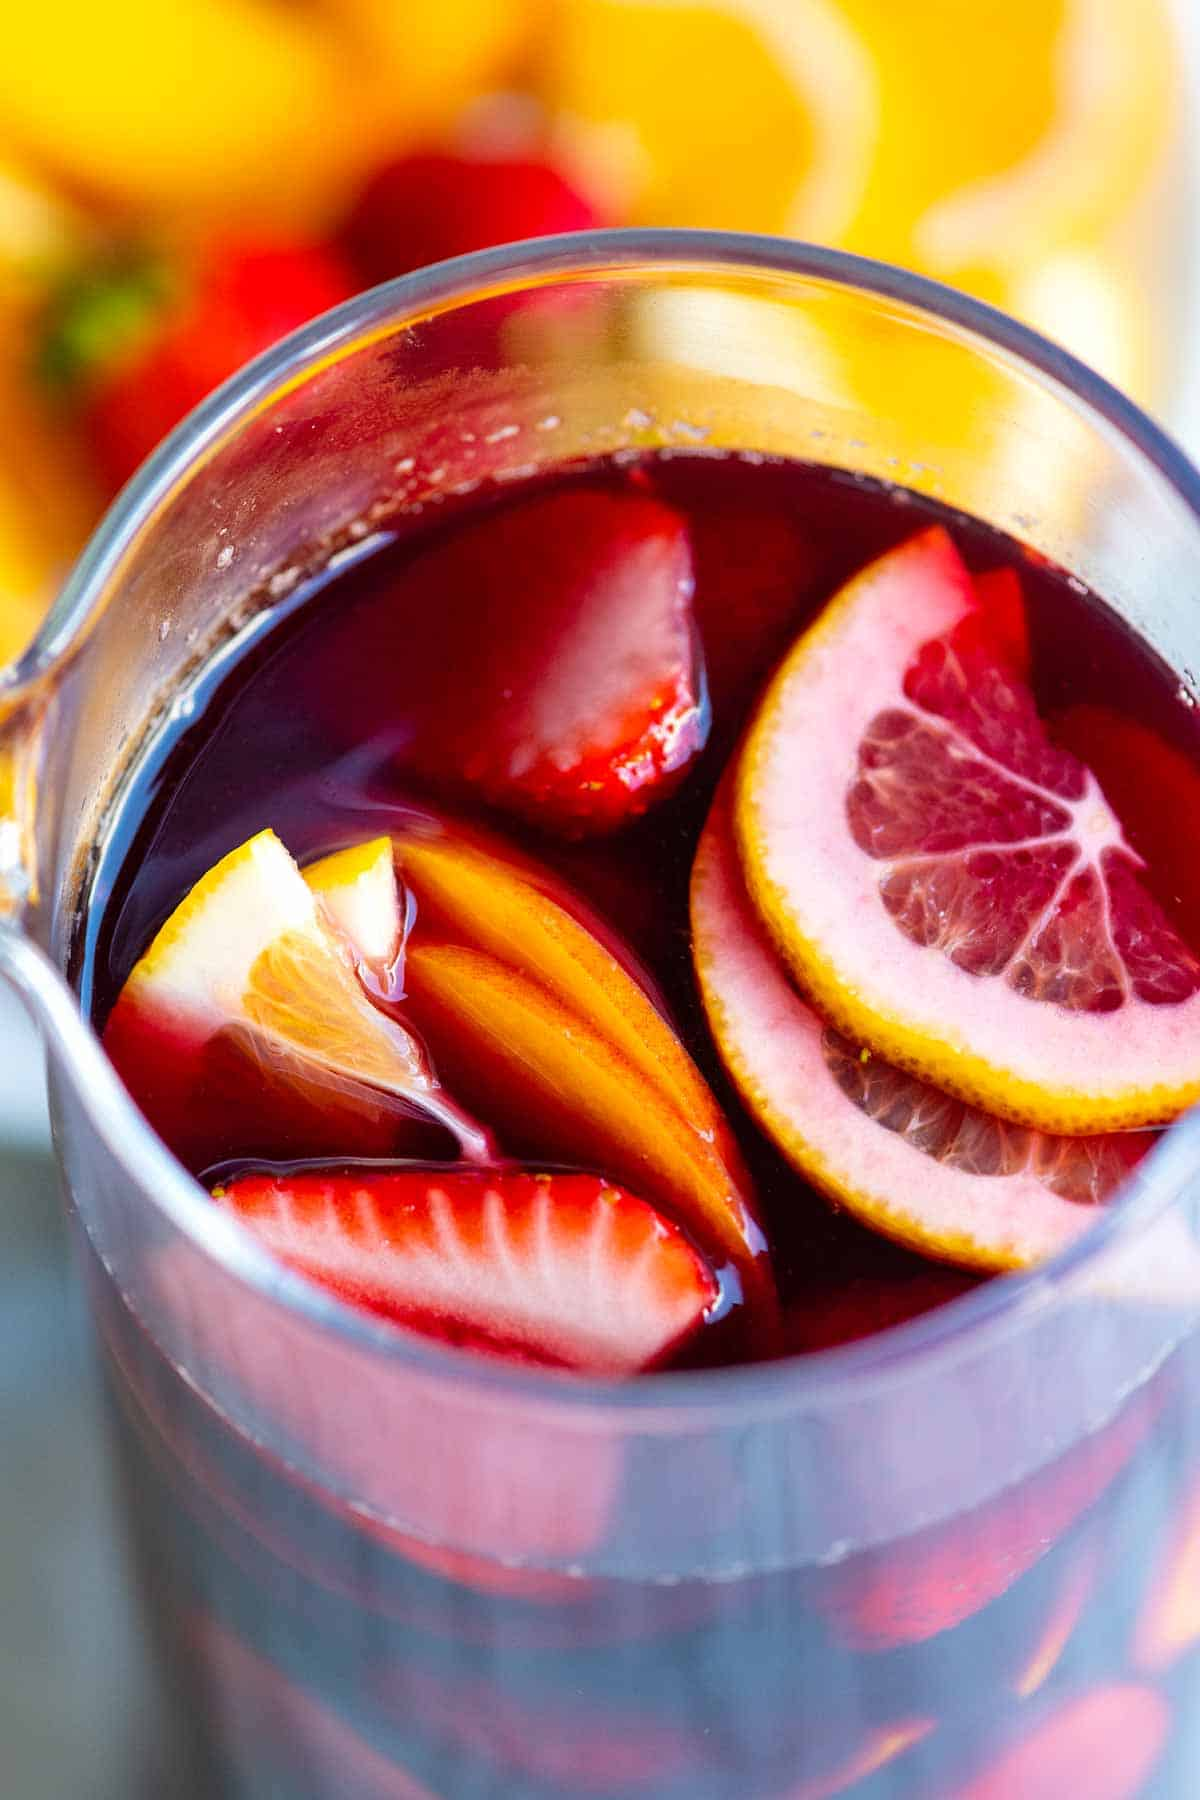 Sangria with fresh sliced oranges, lemon and strawberries